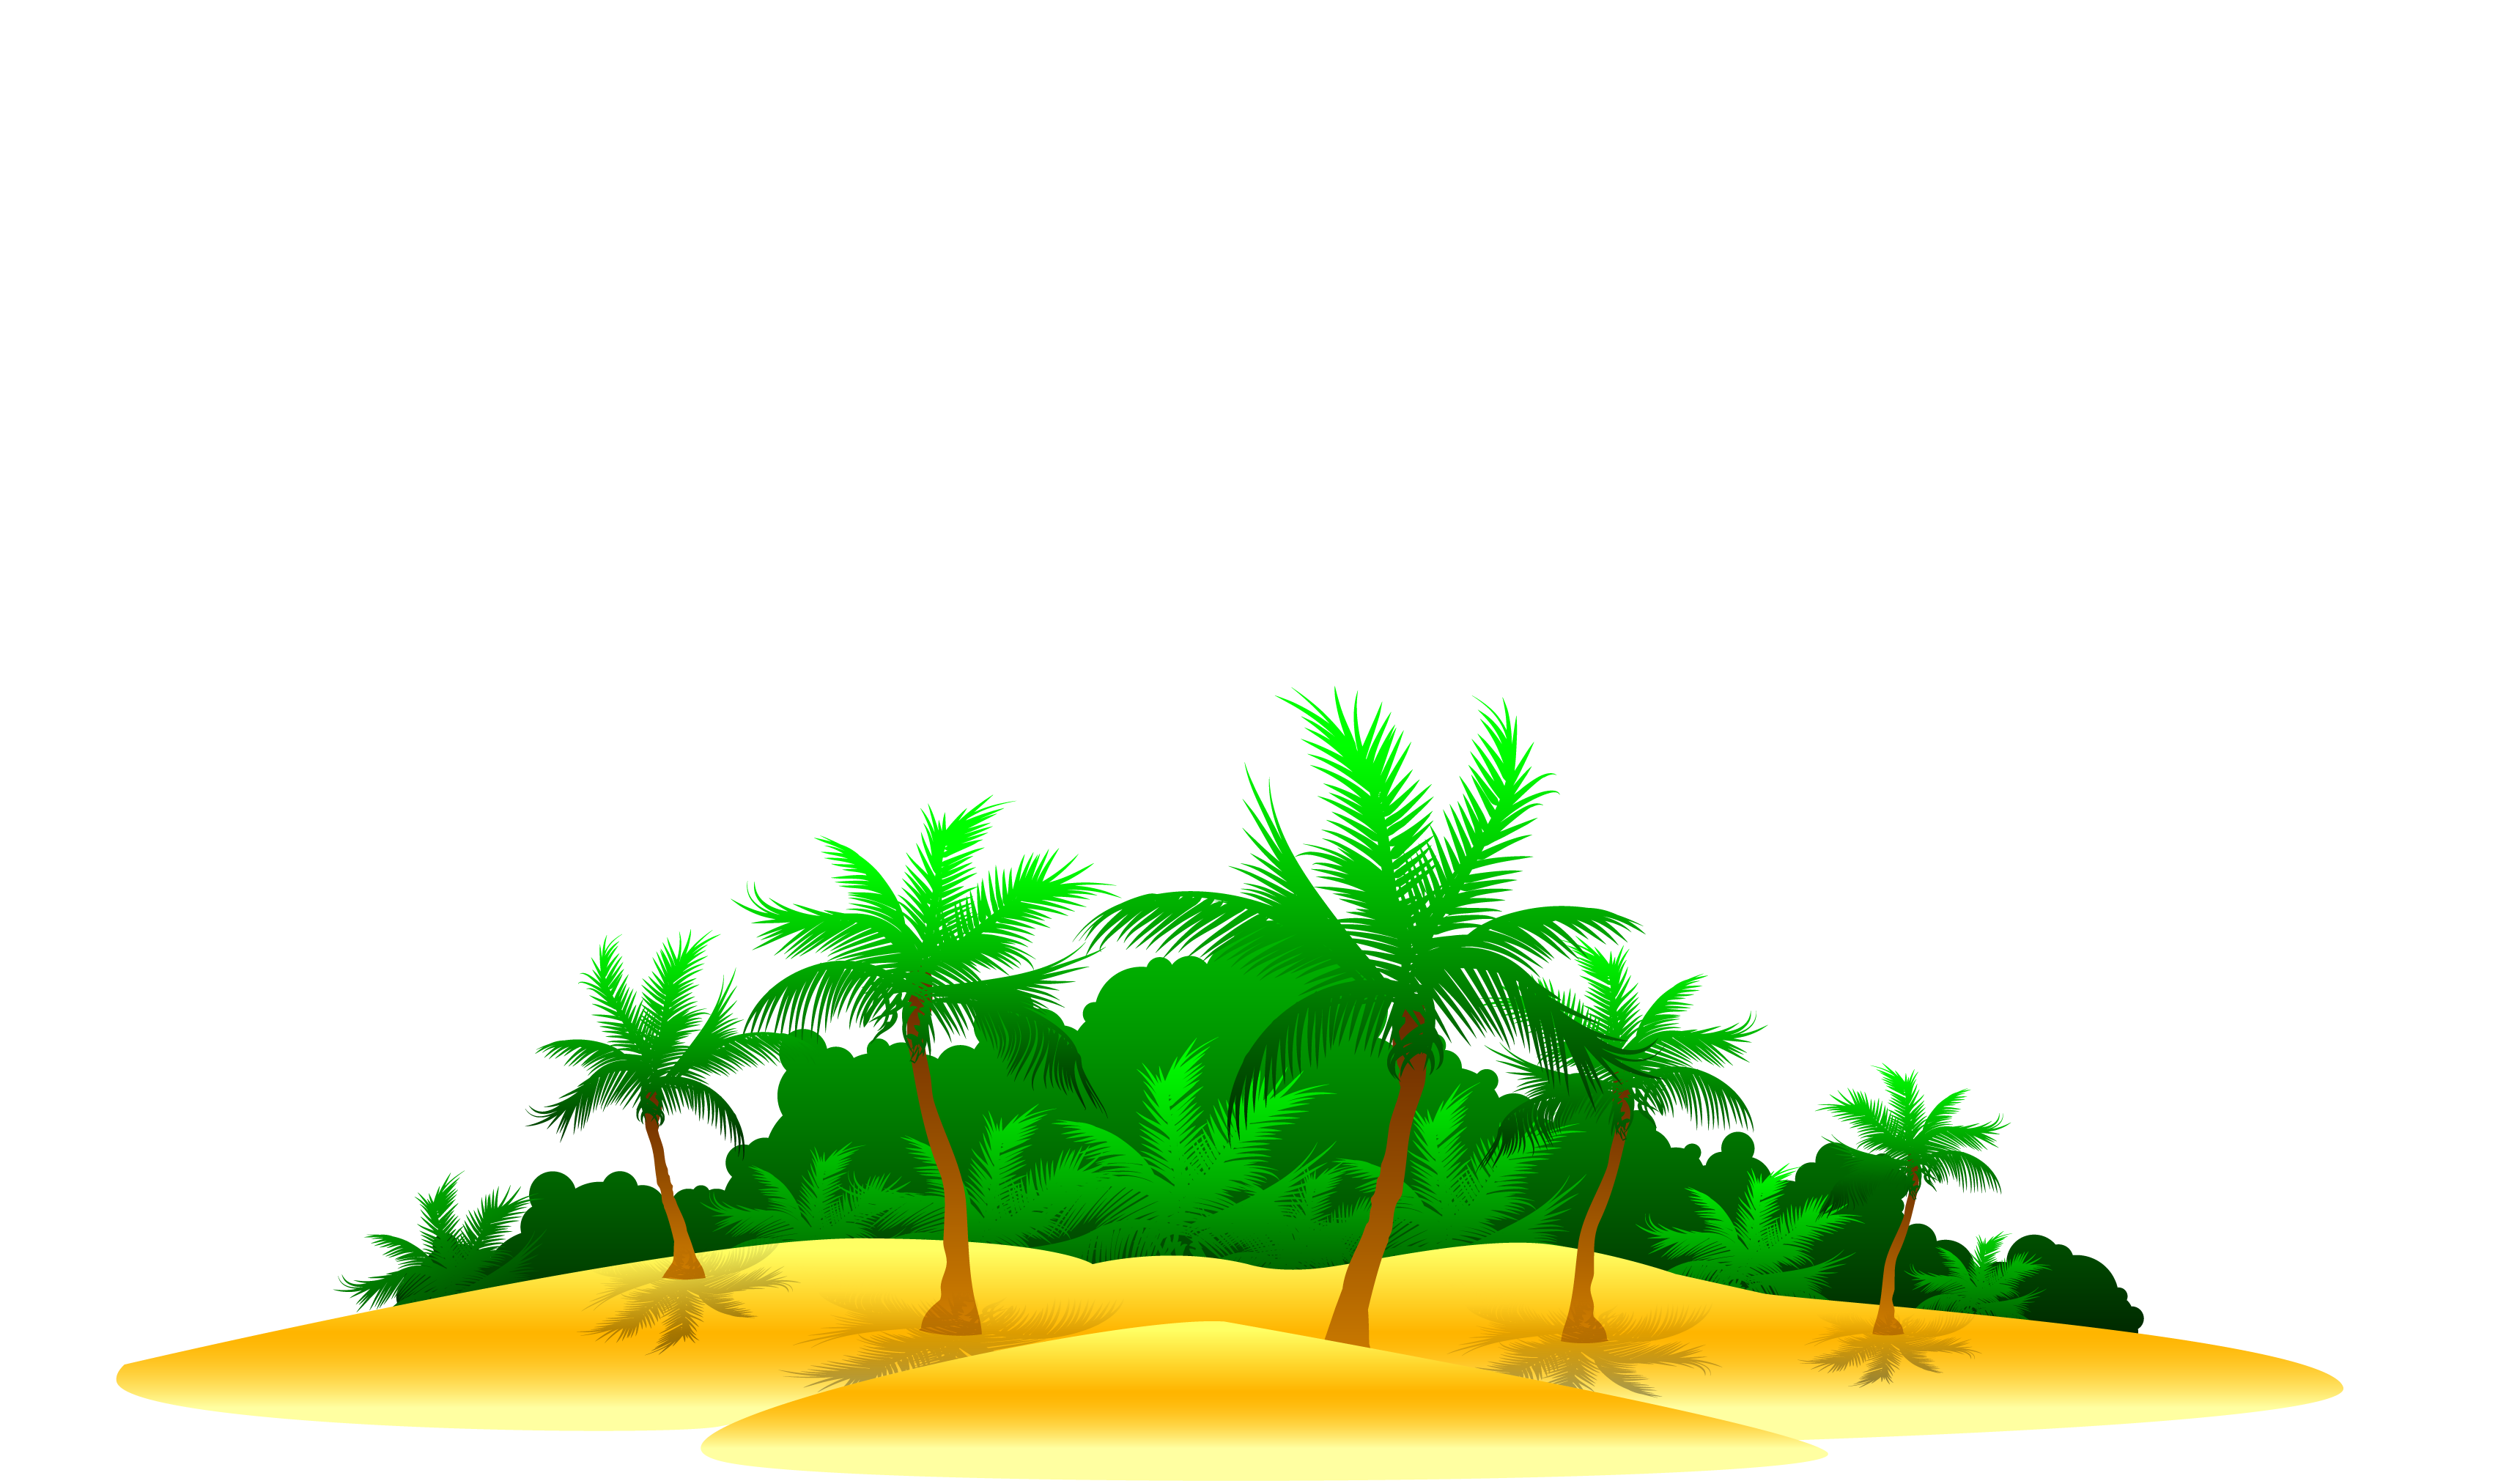 Seawater Ocean Clip art - Beach map of coconut trees next to the ... graphic